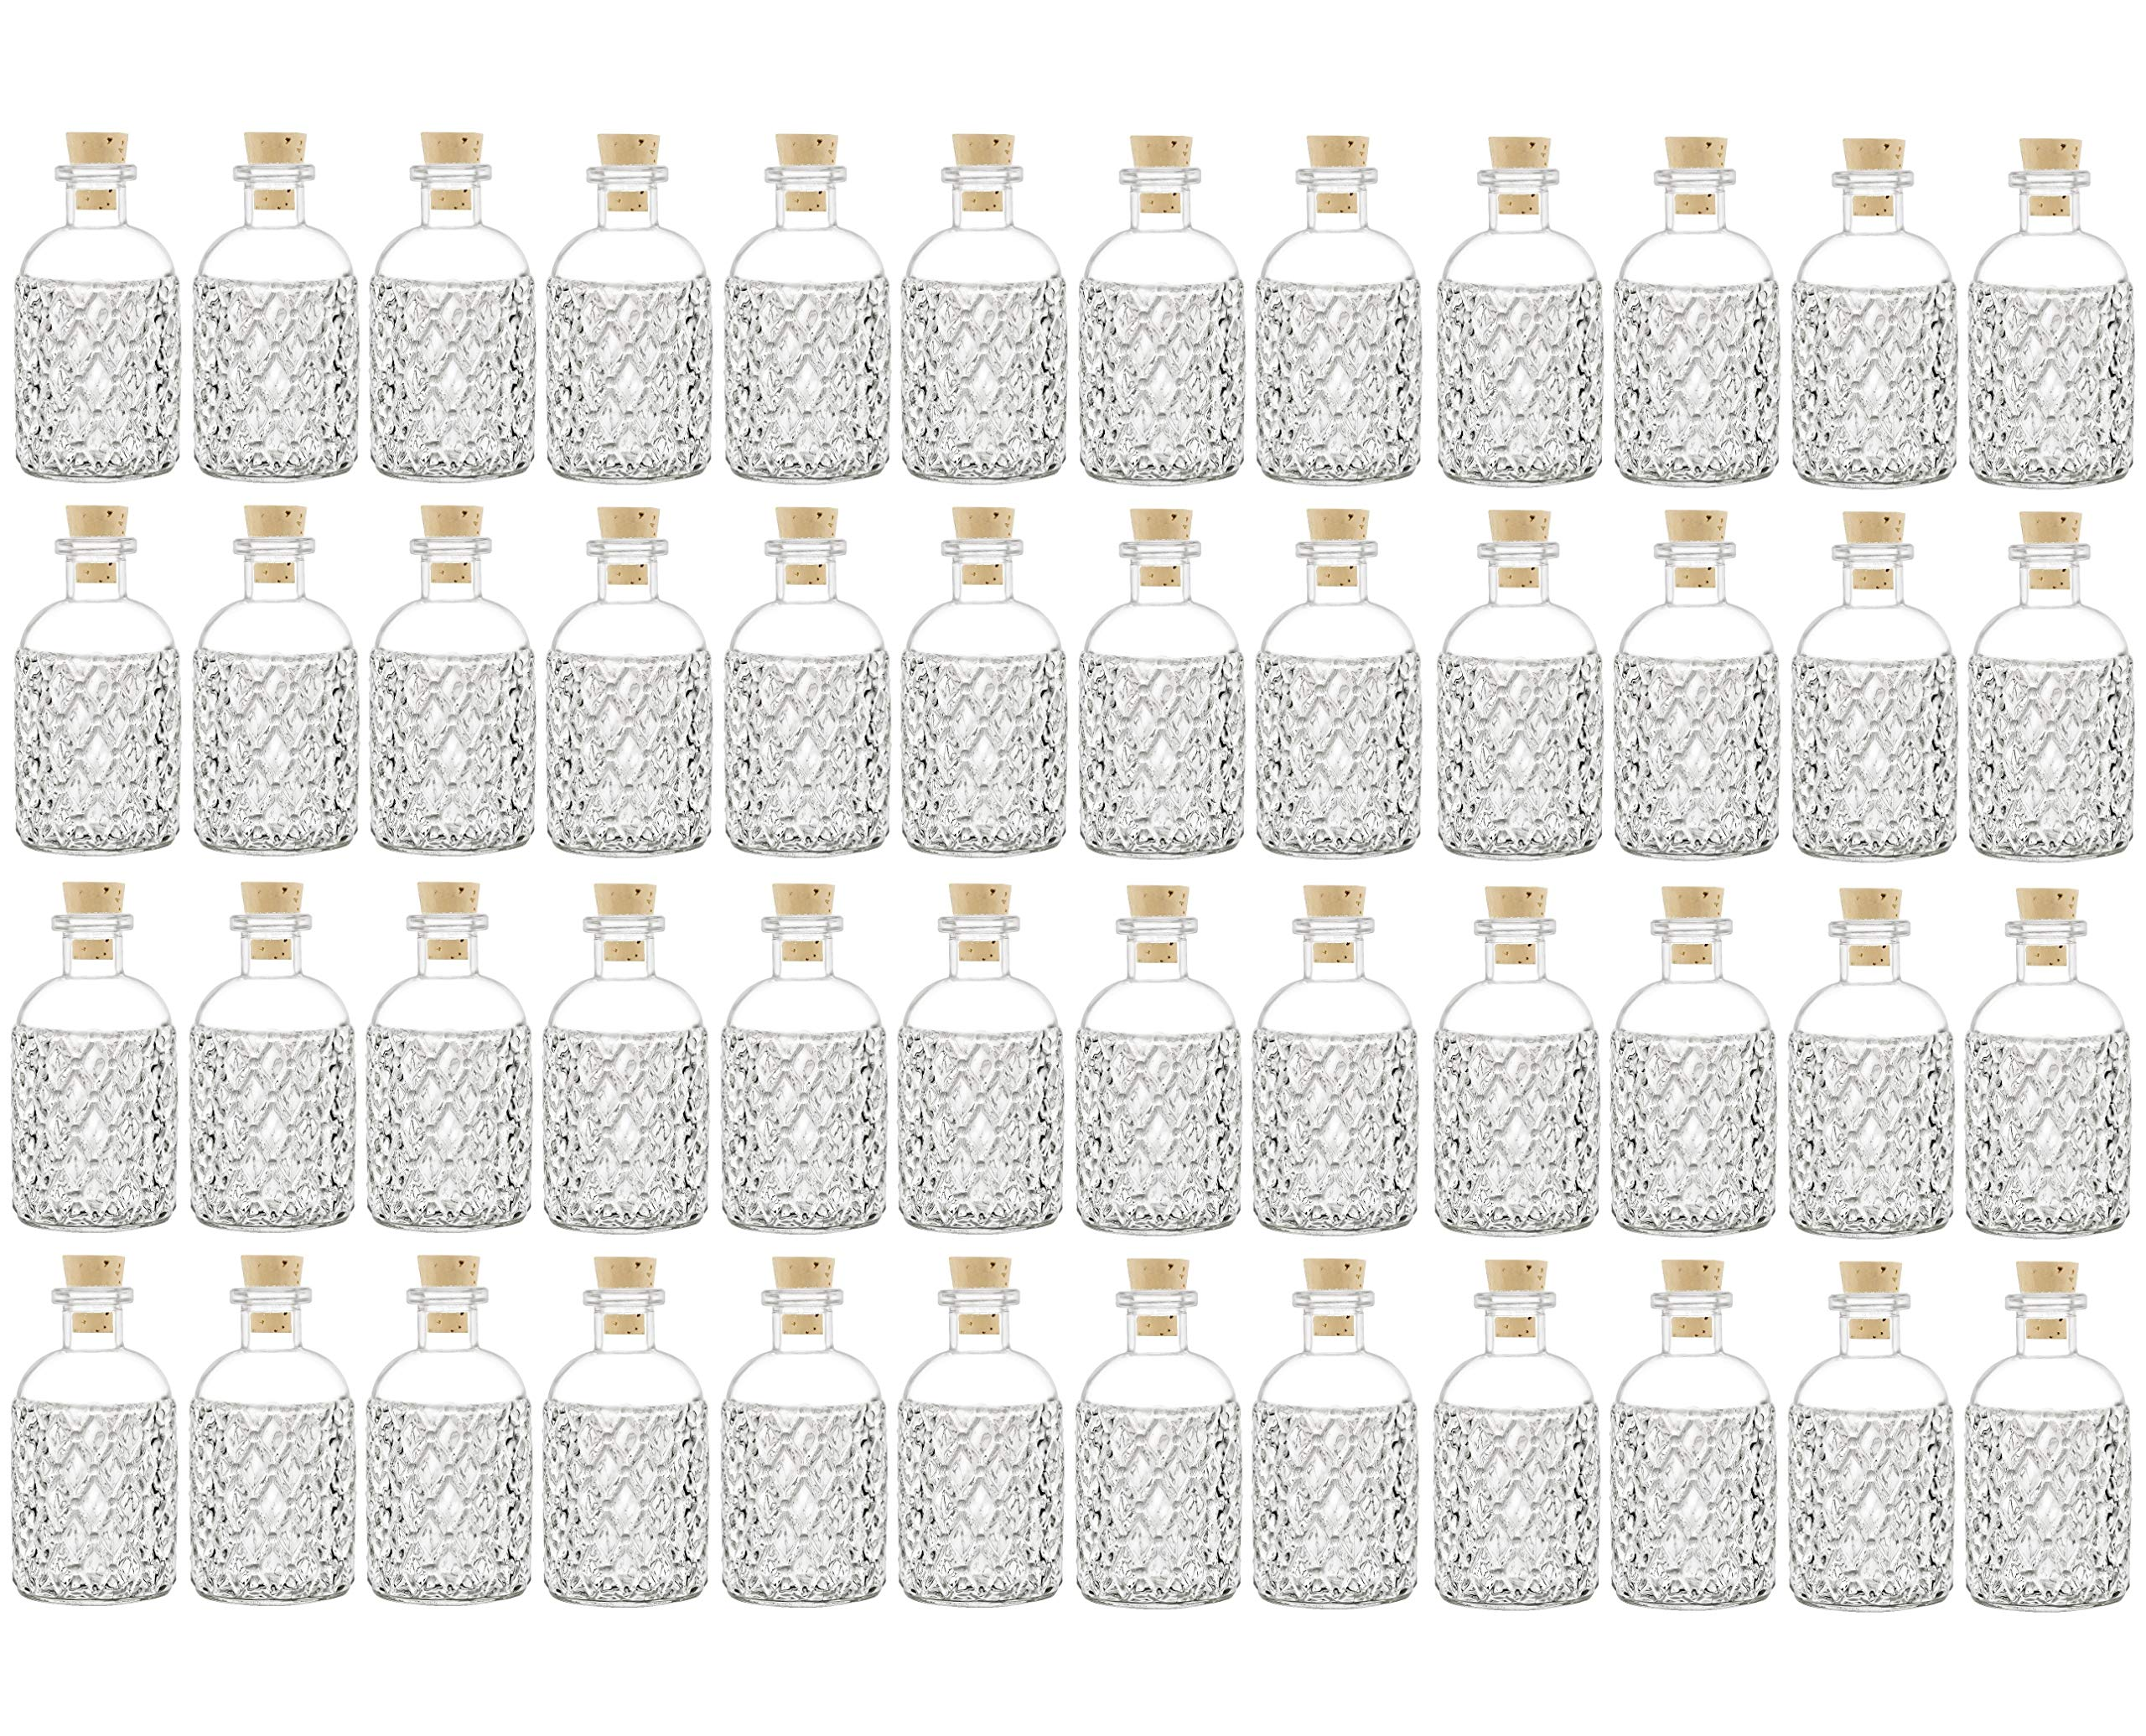 Nakpunar 48 pcs 8 oz Corked Boston Round Bottles with cork - Clear Quilted Style (48, 8 oz Quilted Boston)